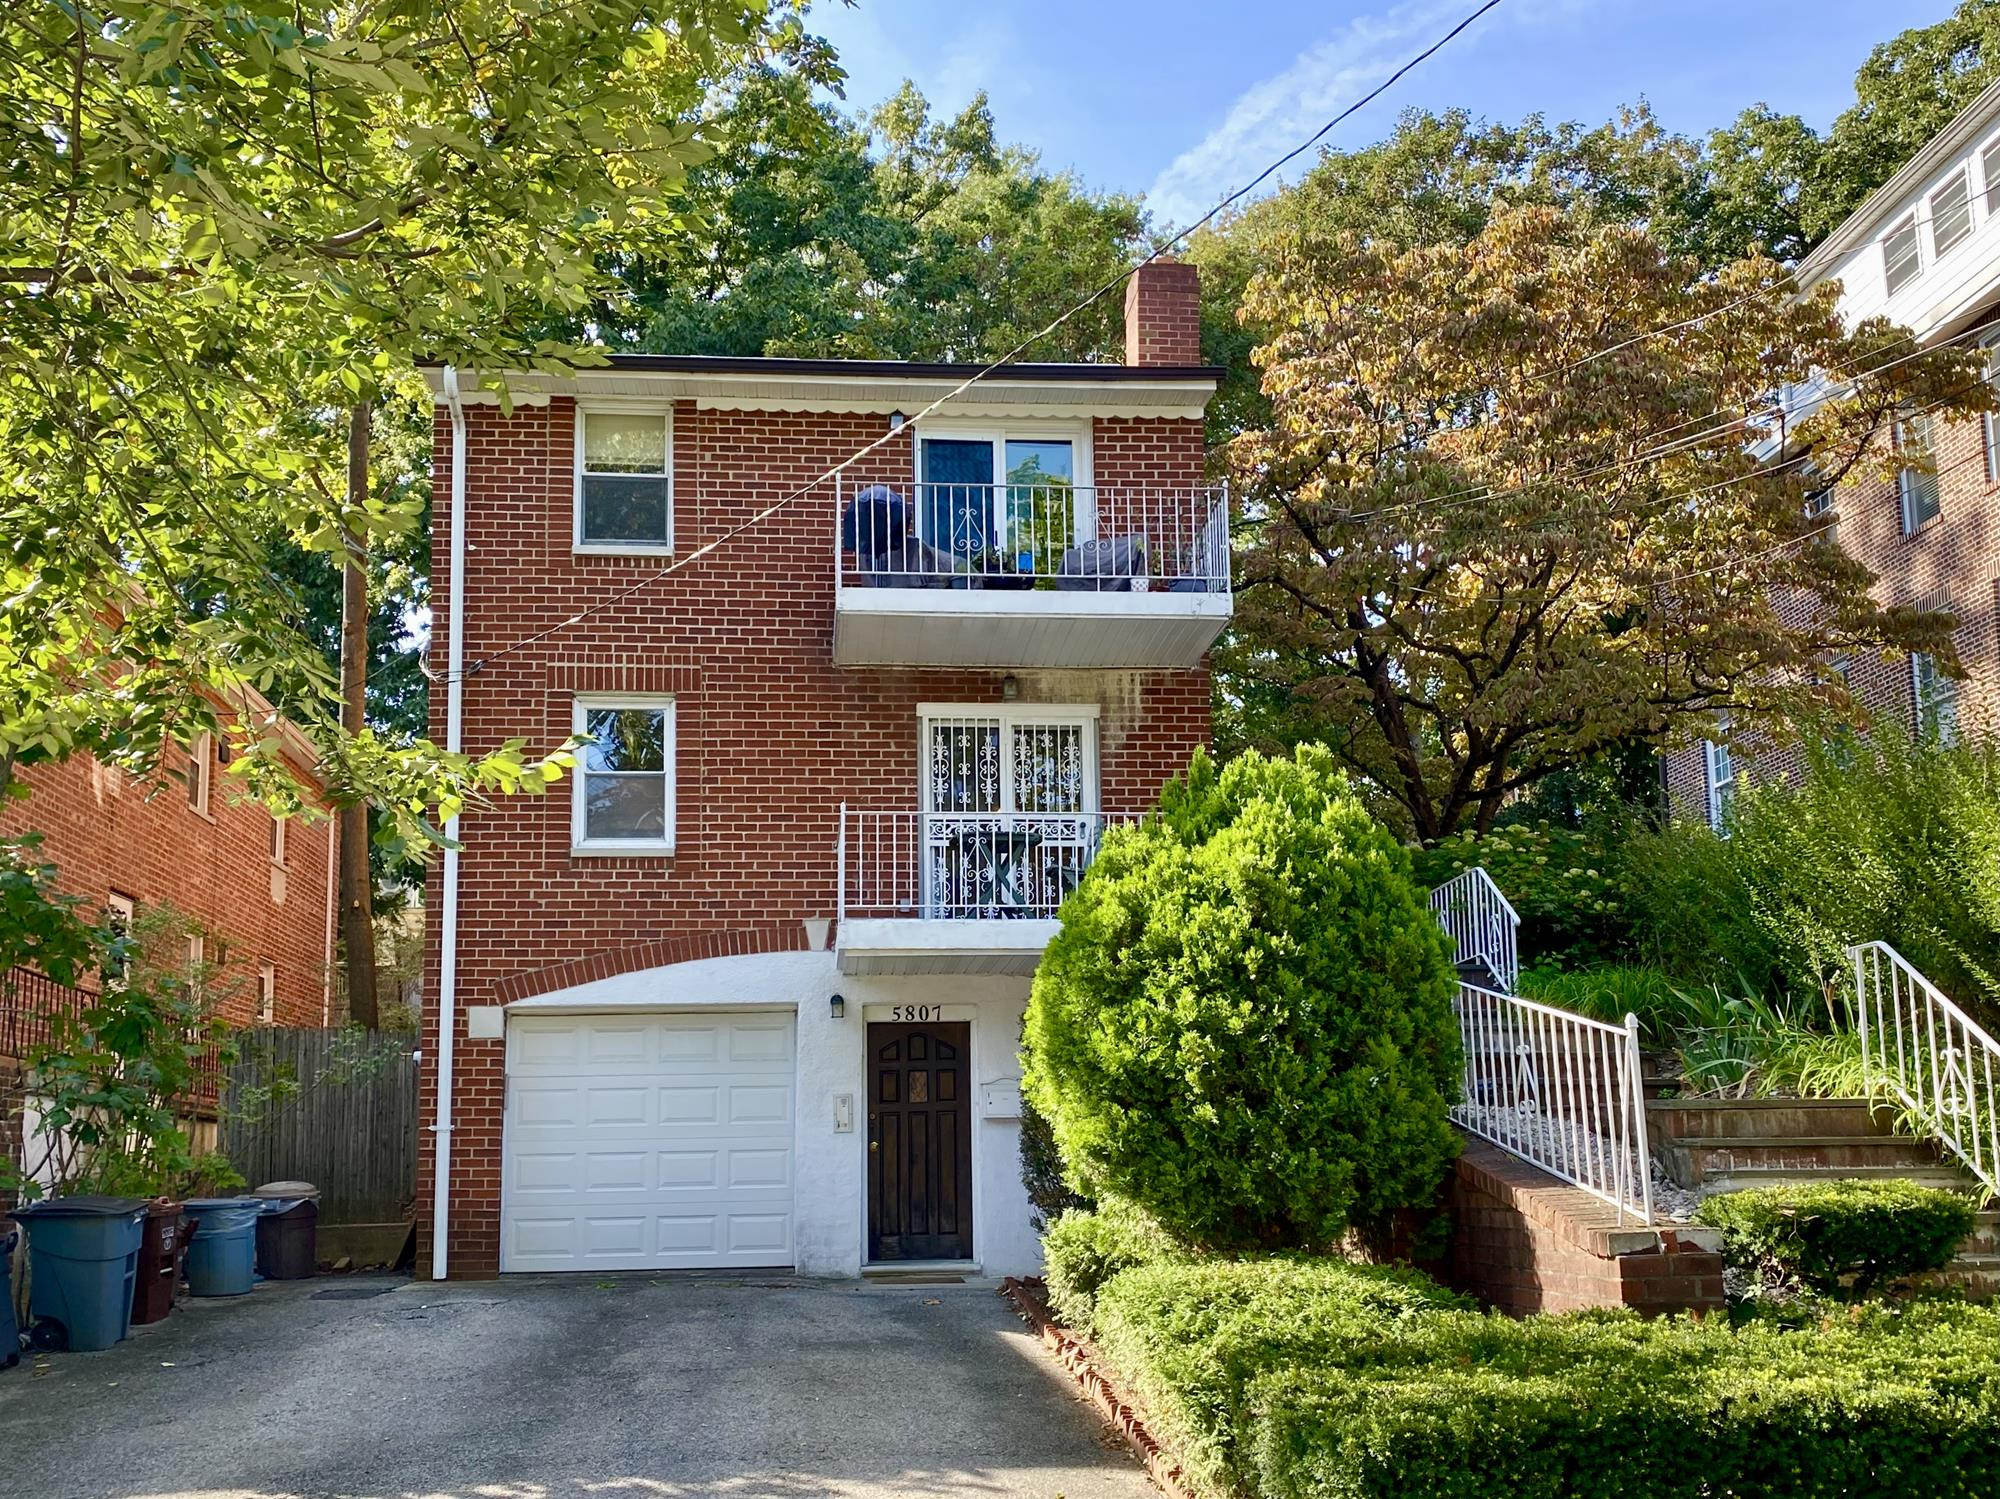 Multi-Family Townhouse with Yard & Patio + Driveway & Garage